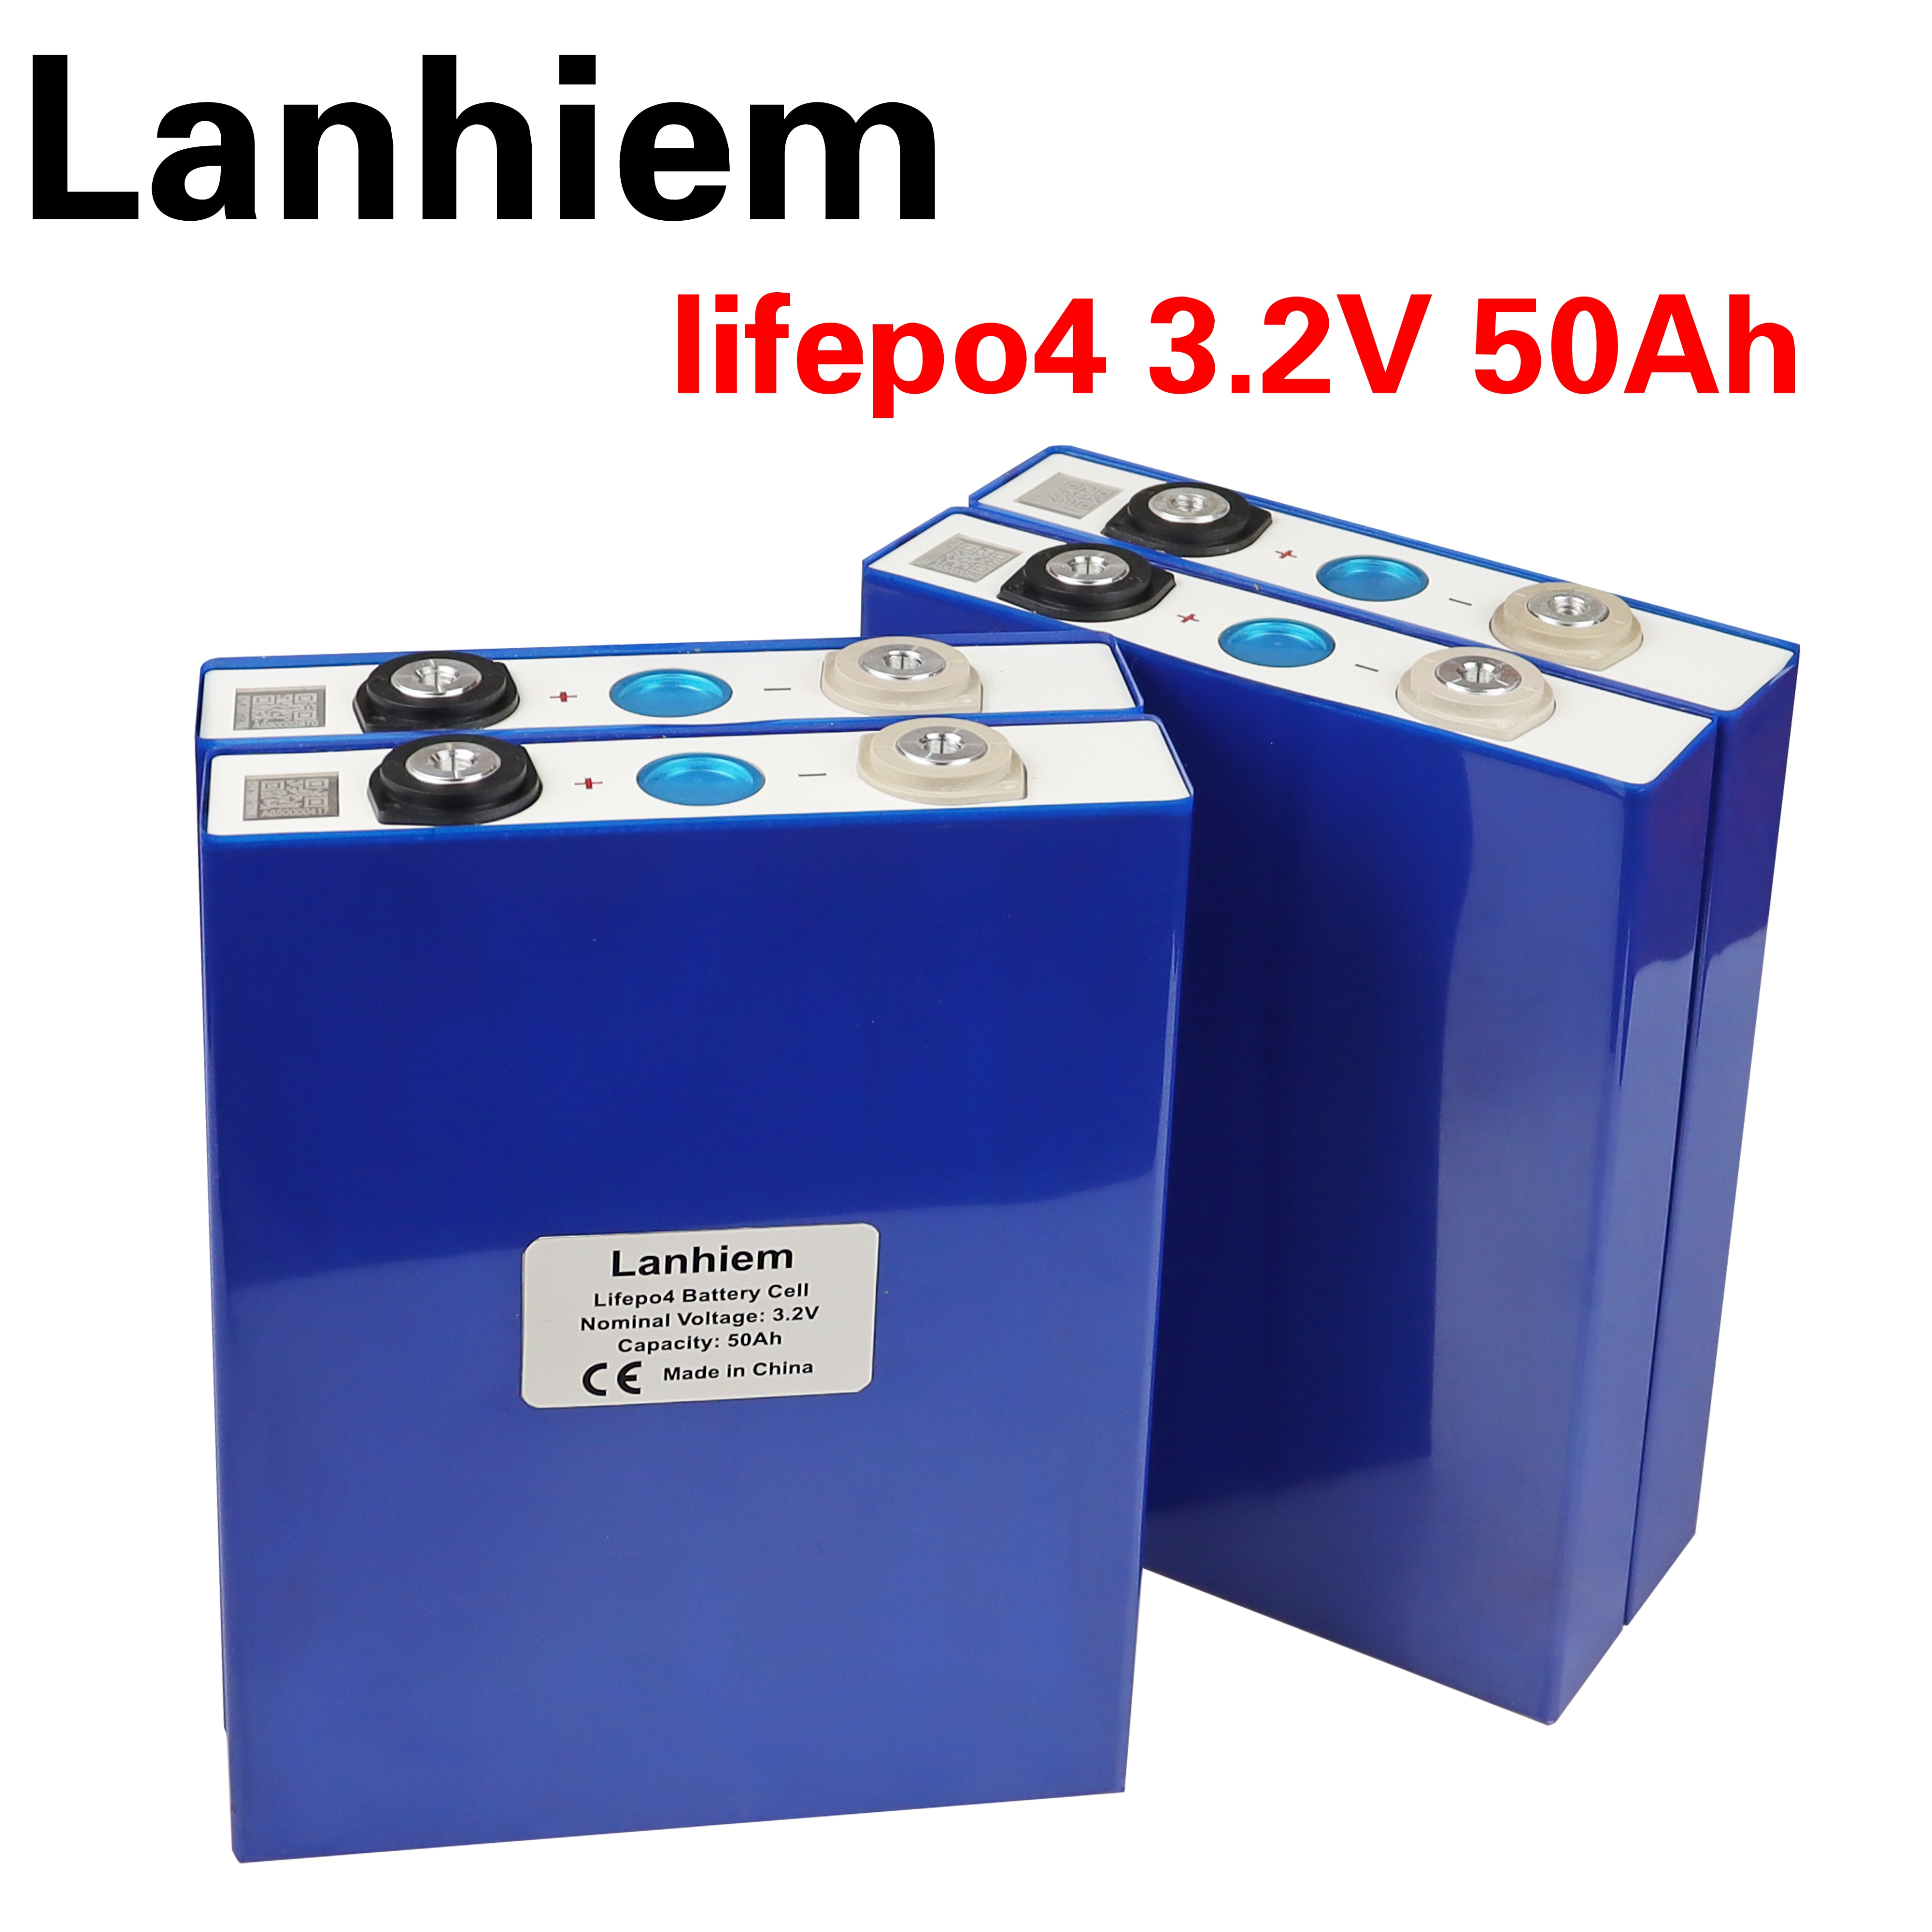 LiFePO4 battery 3.2V 50Ah rechargeable lithium iron phosphate battery